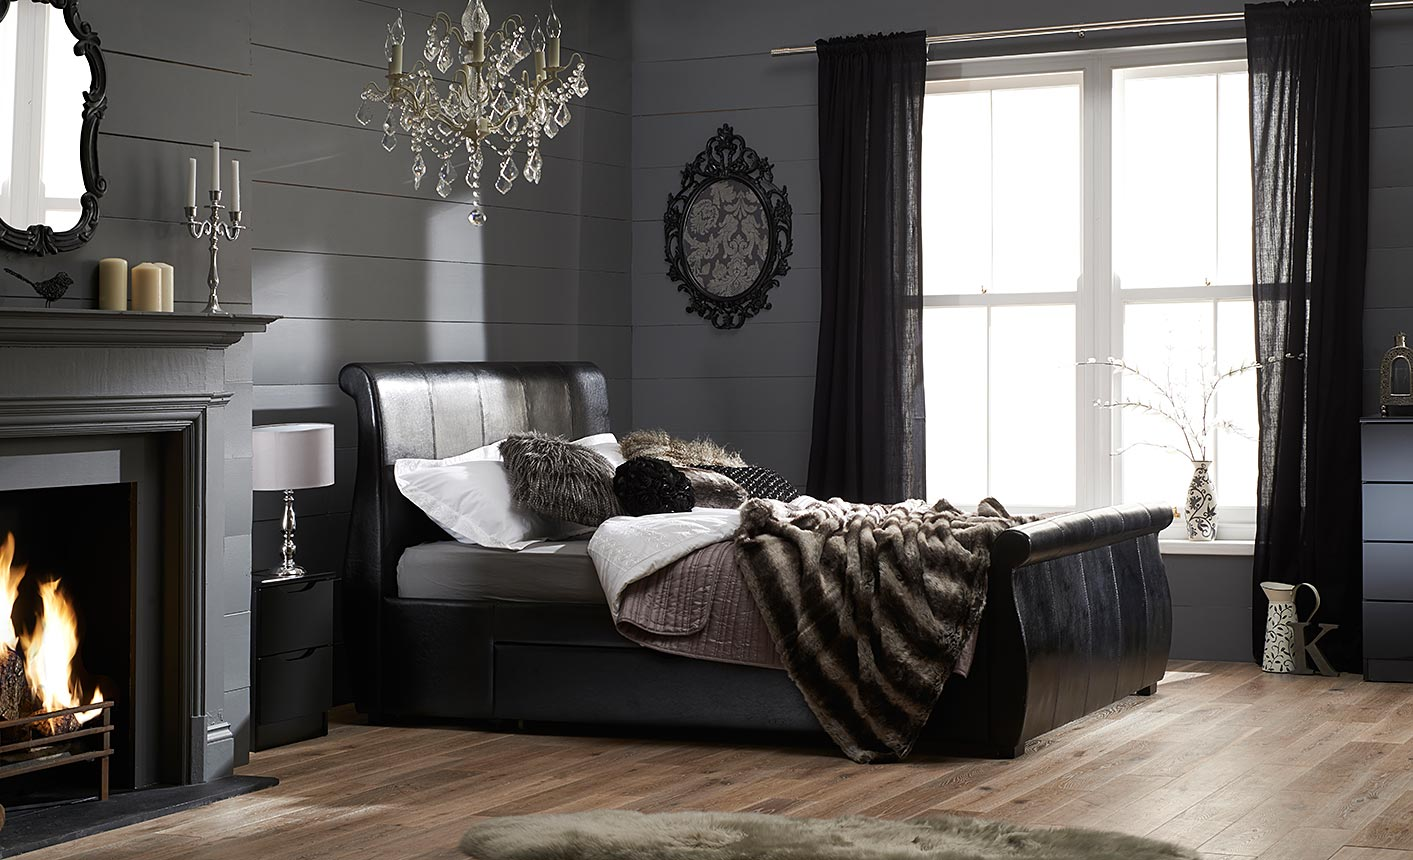 Dreams: Roomset photography by Basement Photographic